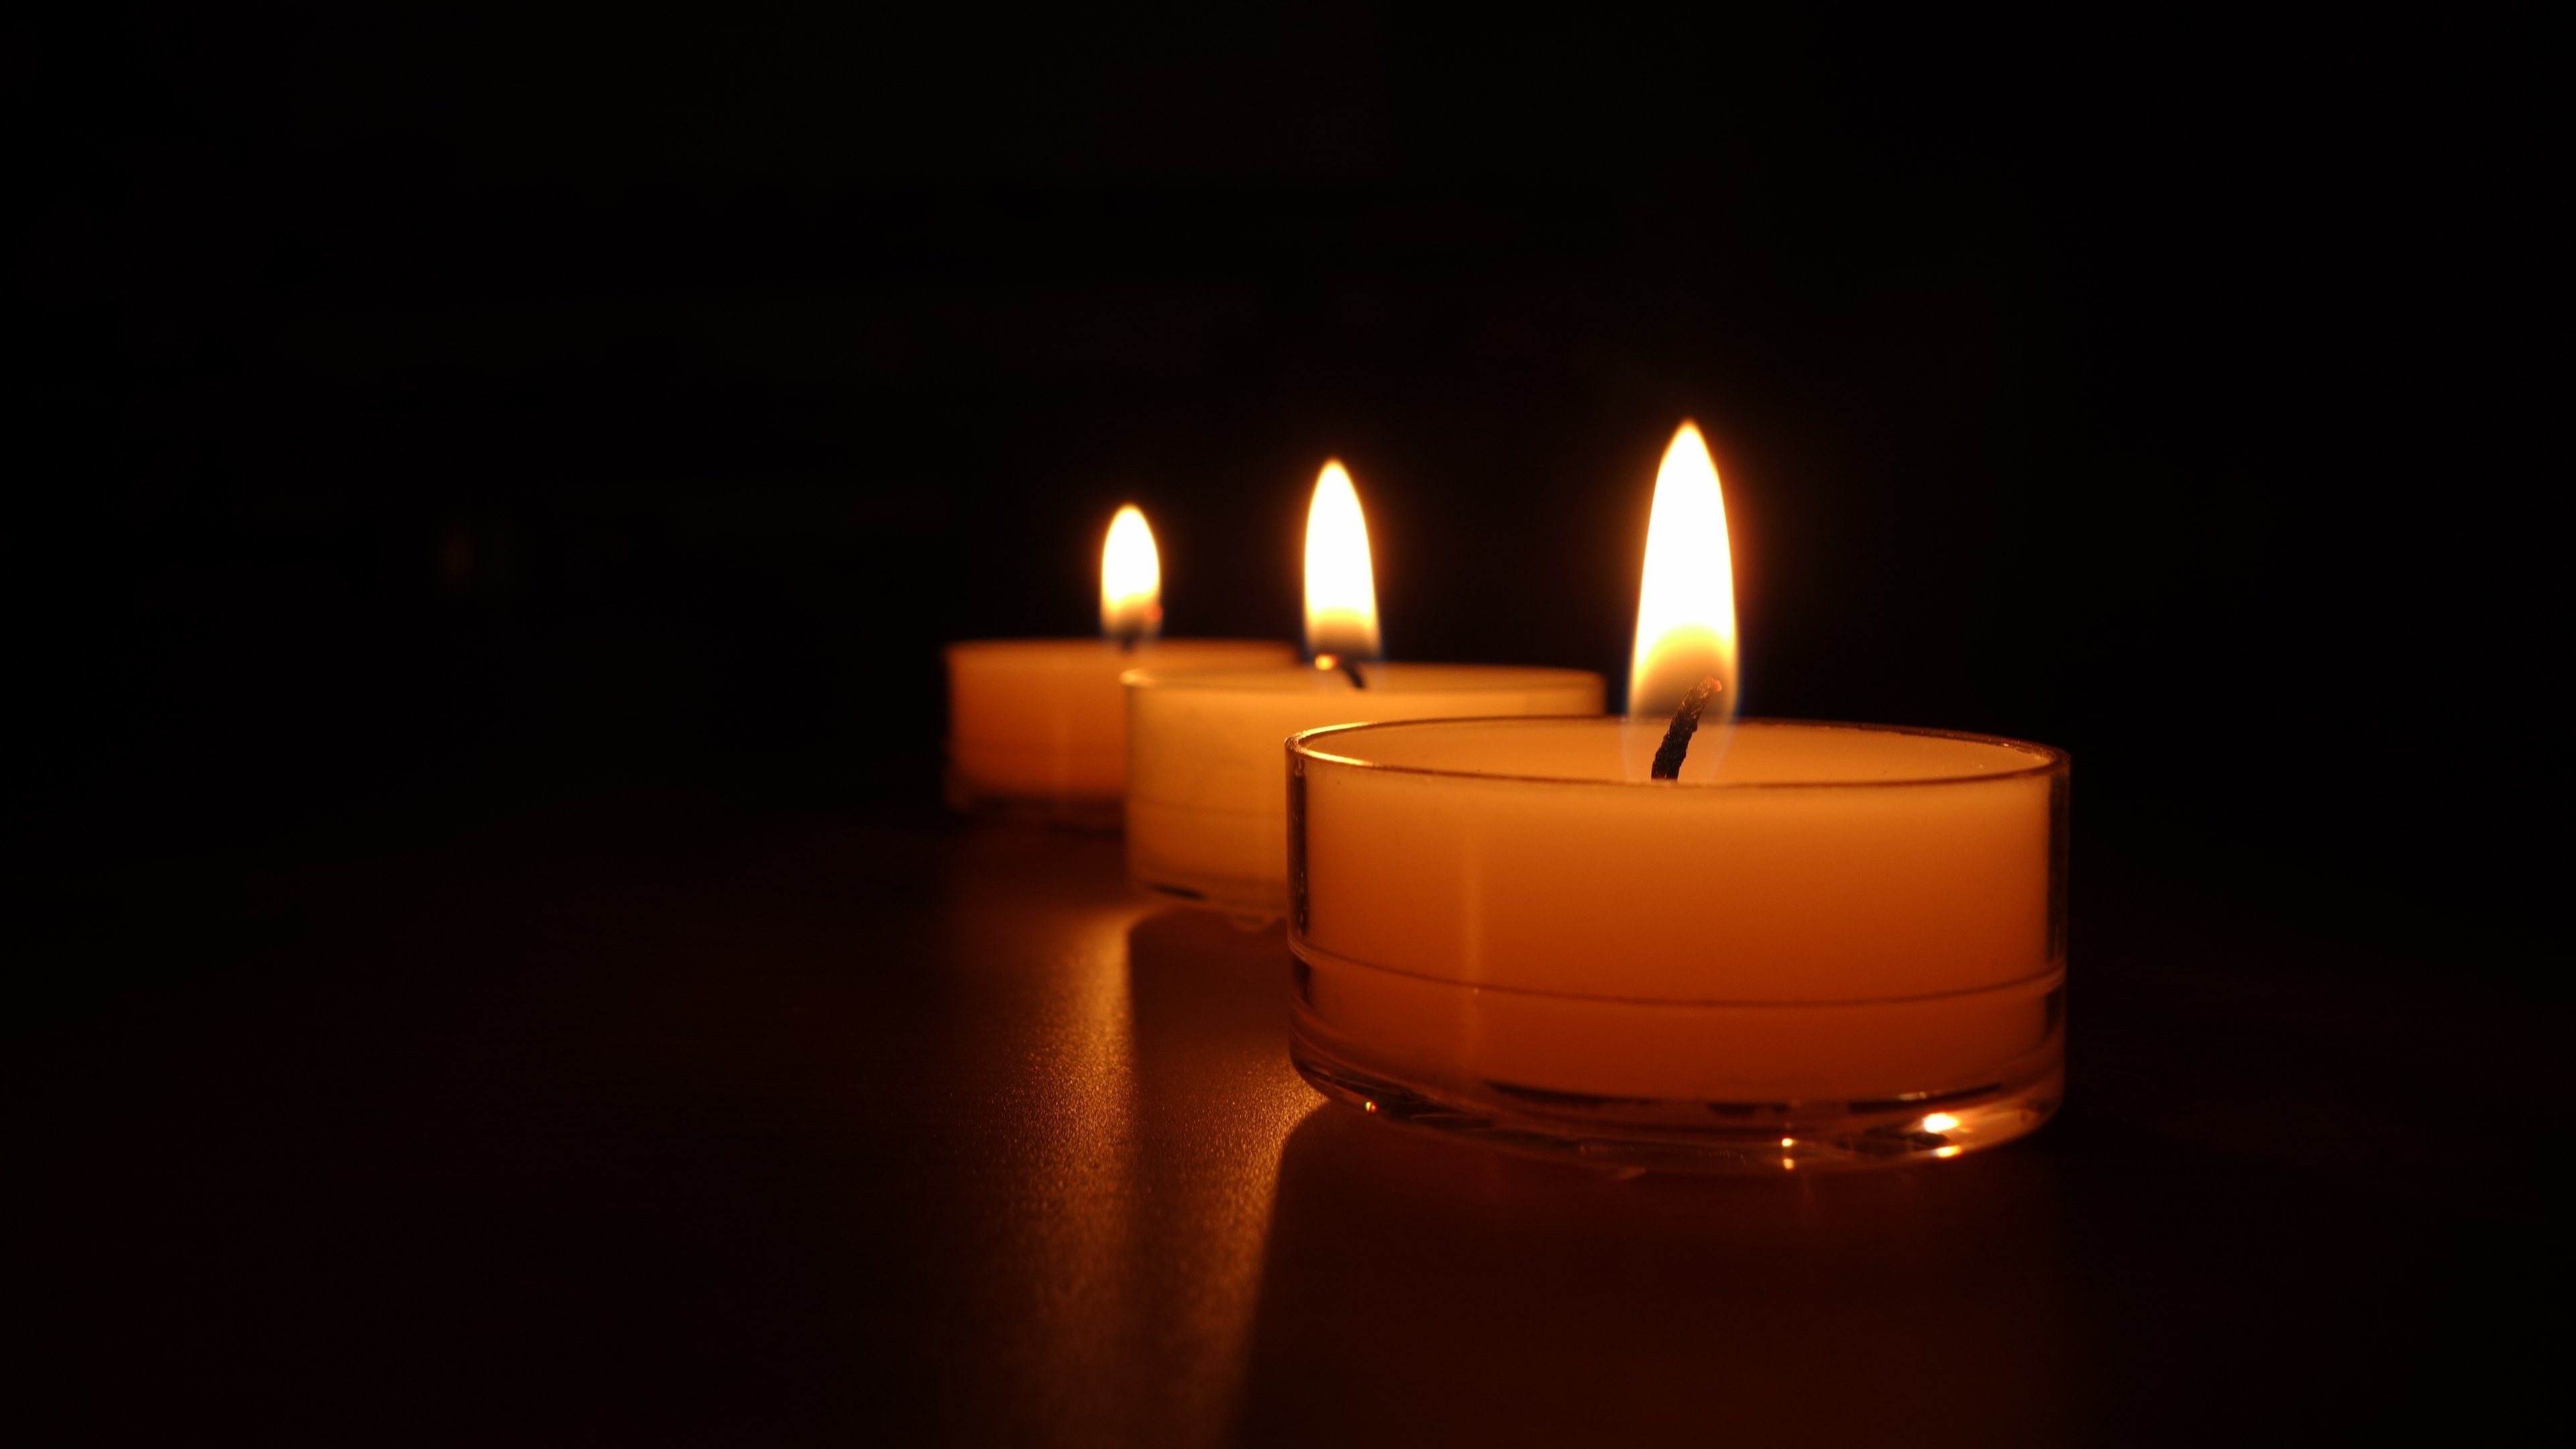 Memorial Candle Images